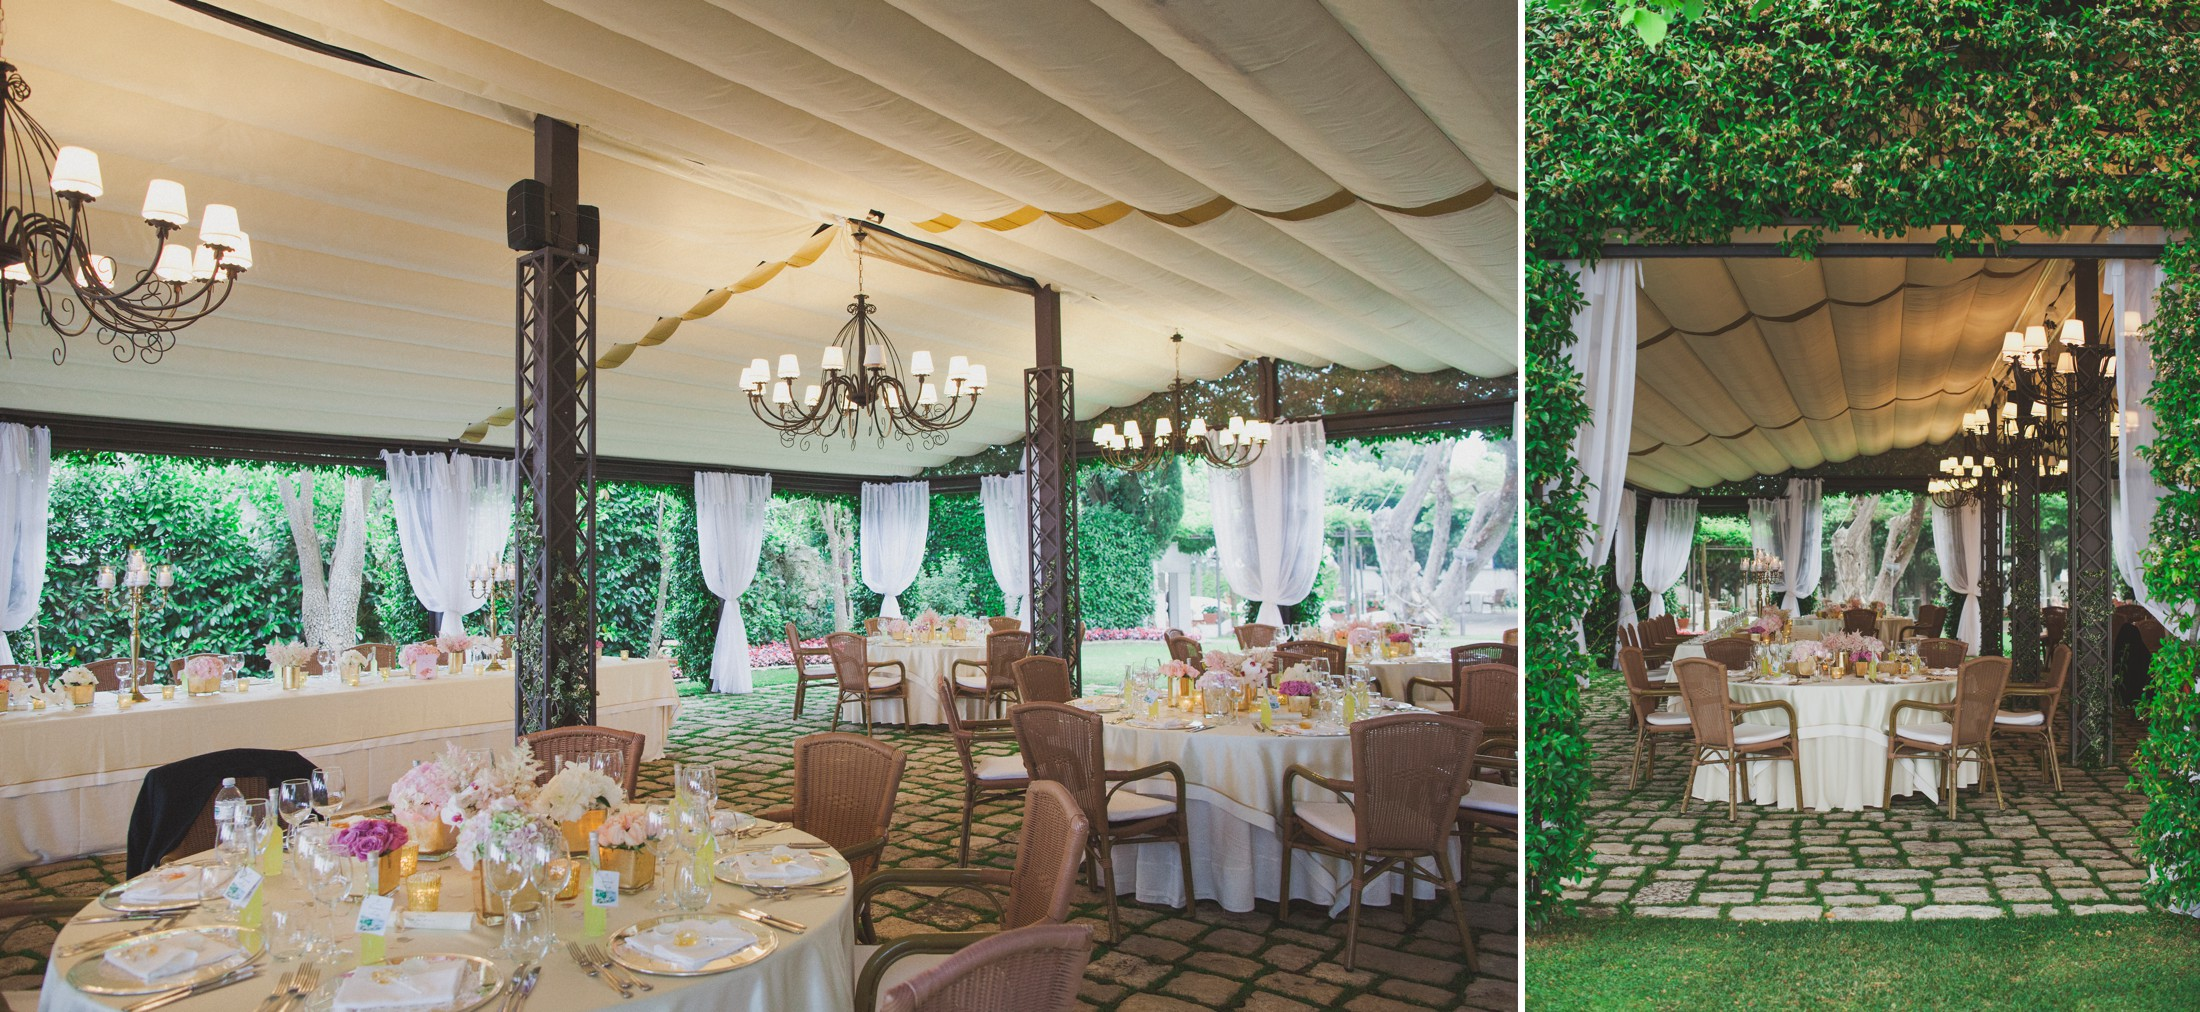 villa eva, wedding location in ravello